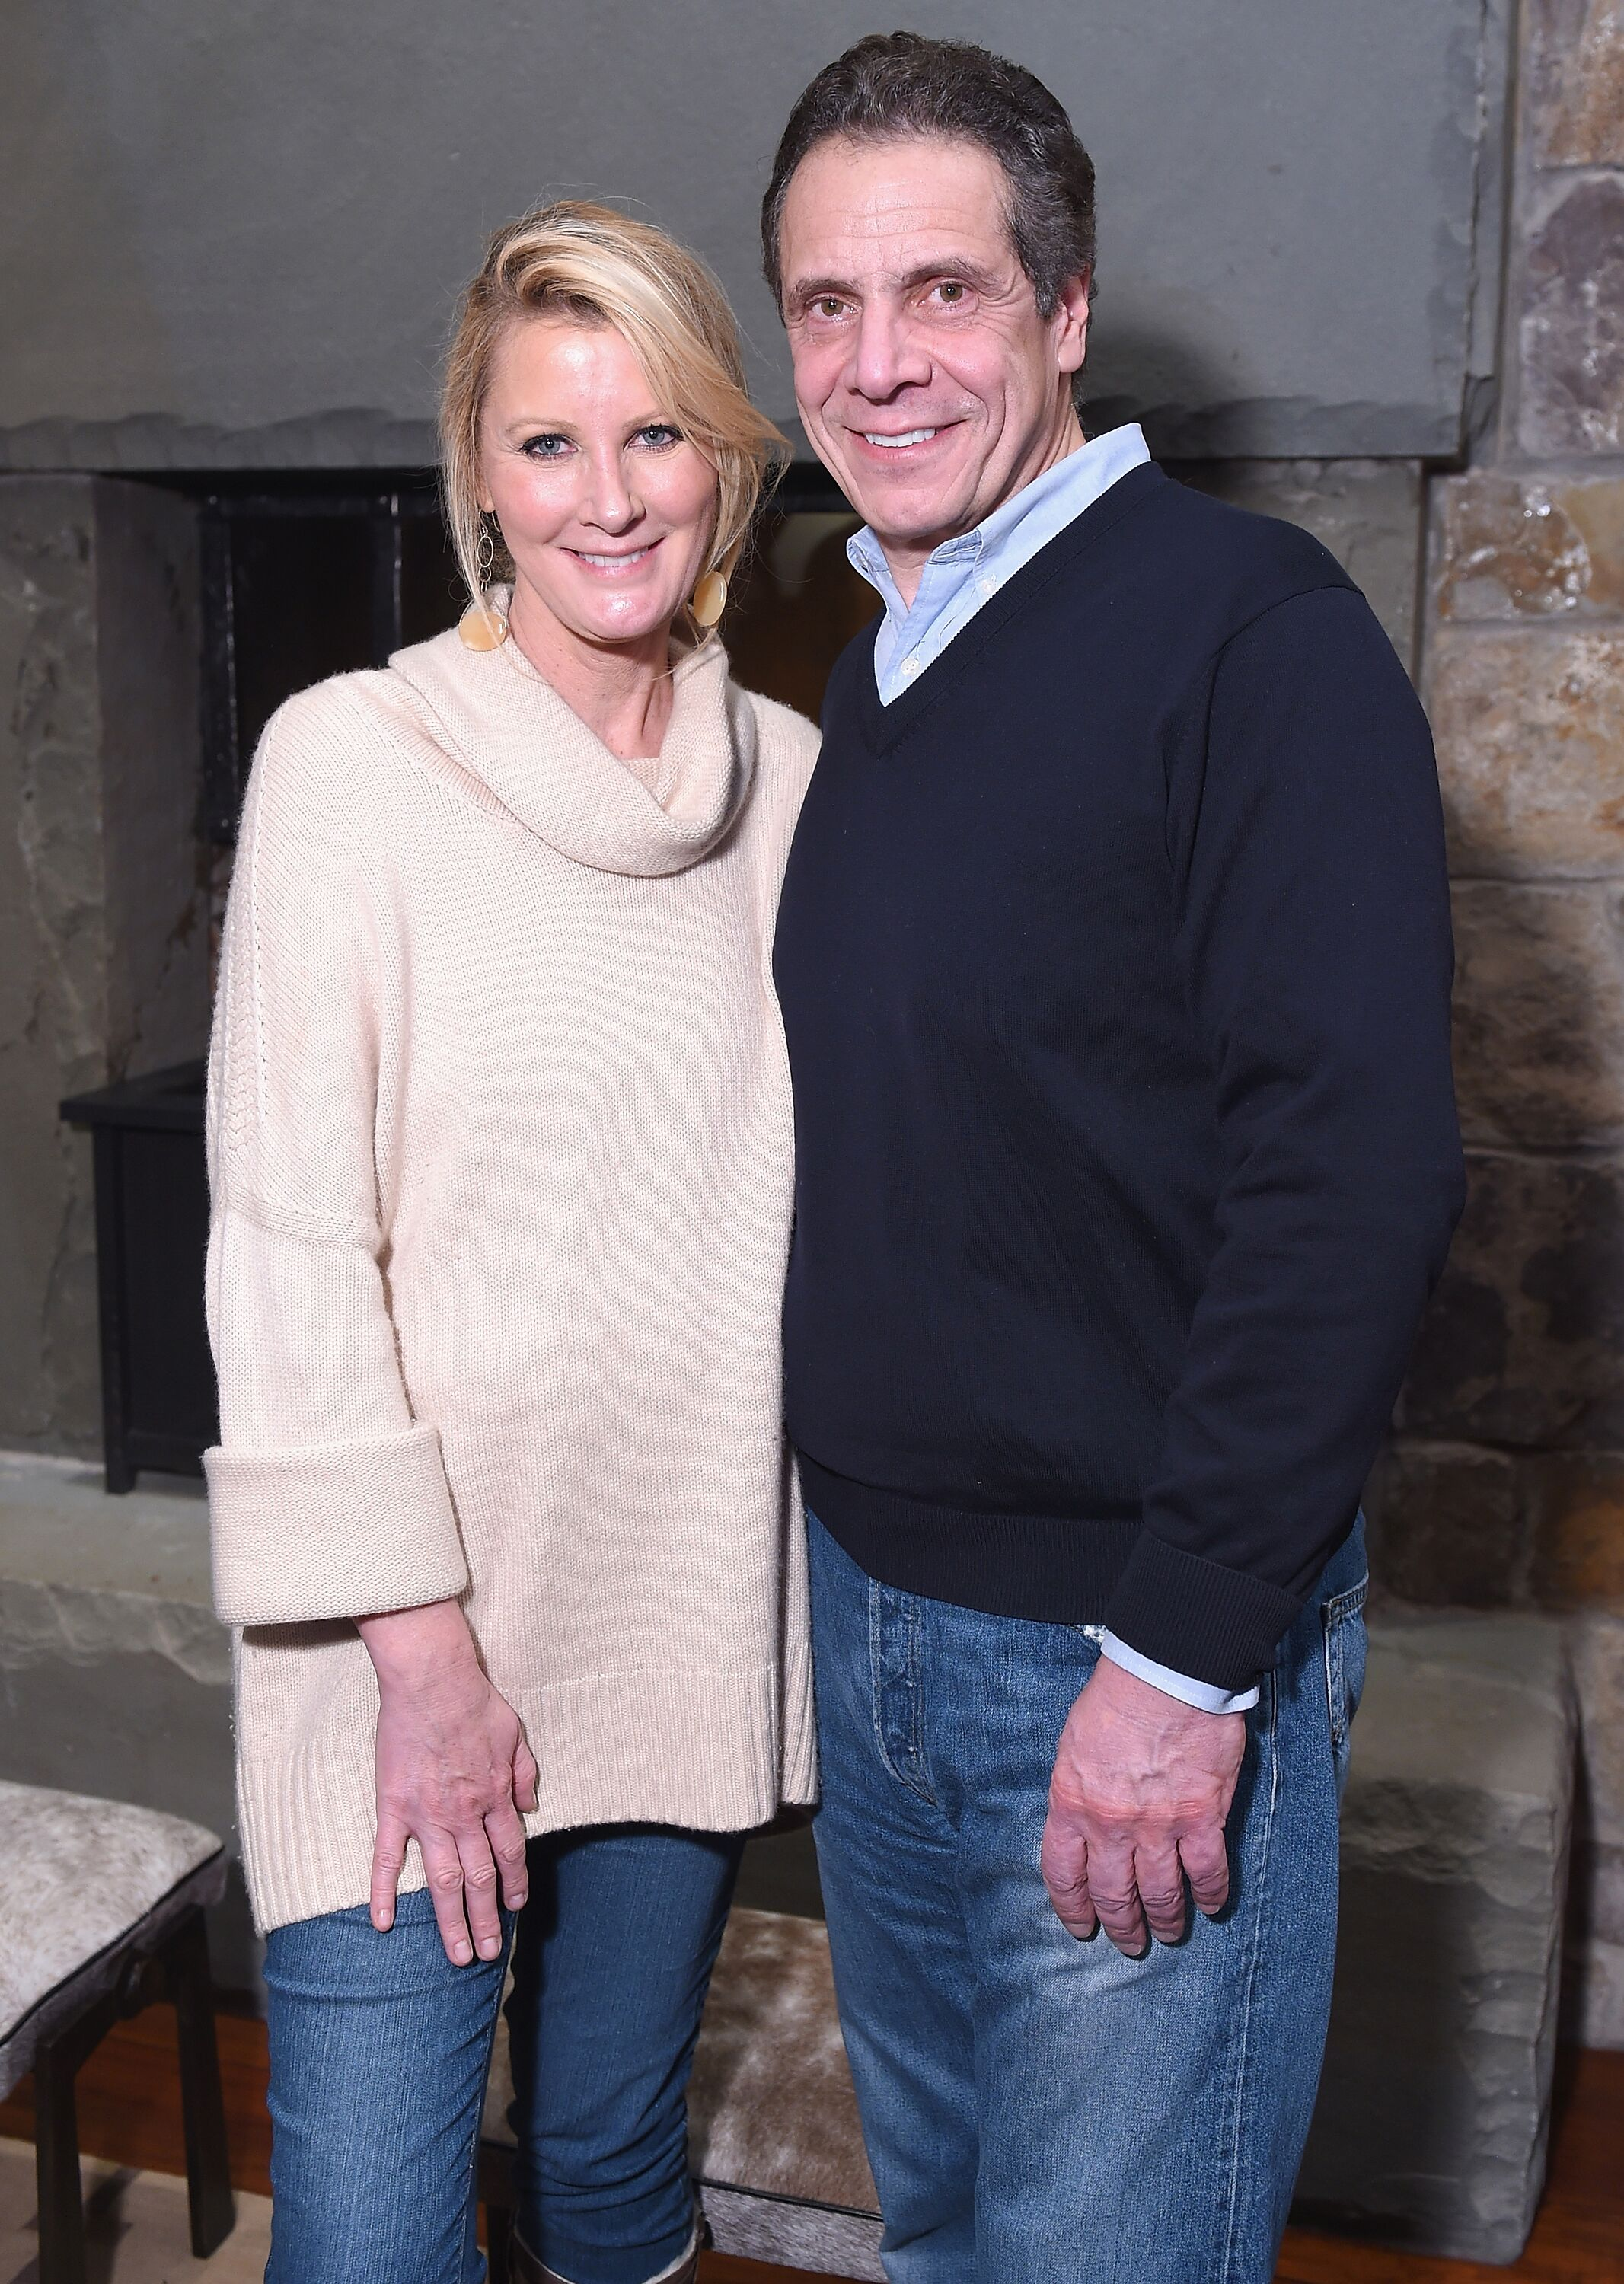 """Sandra Lee and Governer Andrew Cuomo attend the """"RX: Early Detection A Cancer Journey"""" at the Sundance Film Festival in 2018 